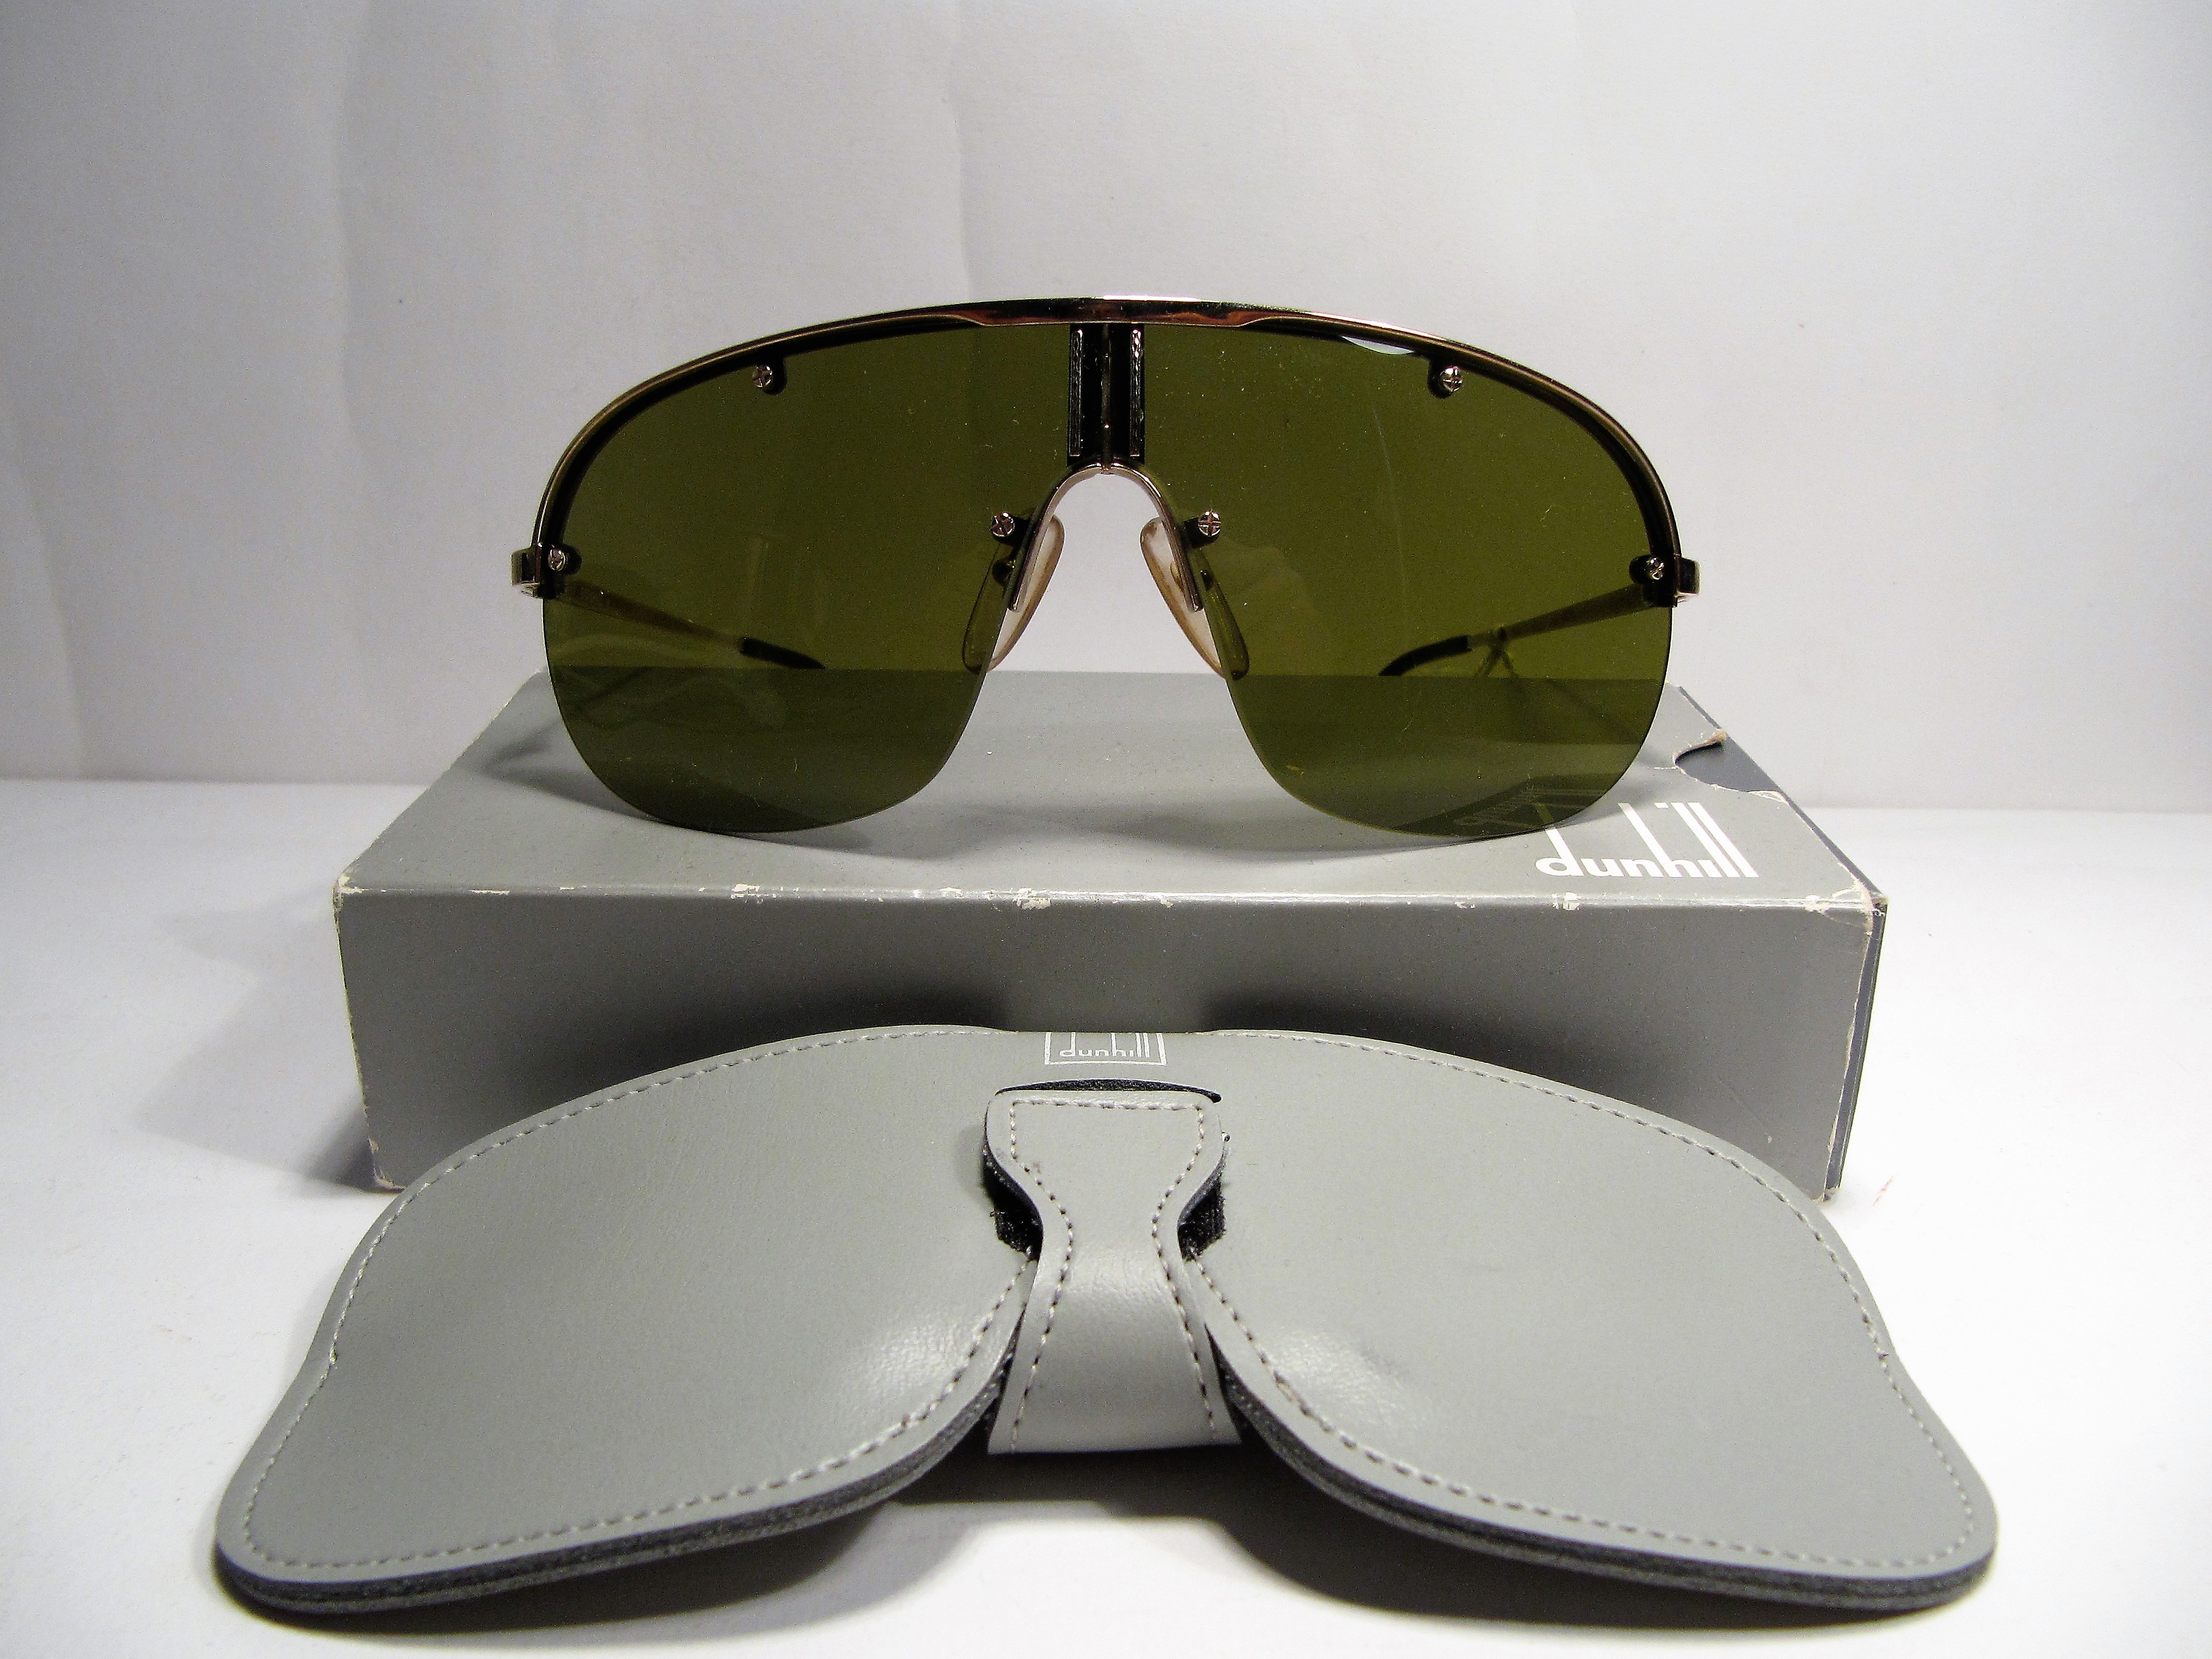 Dunhill 6102 1980s vintage sunglasses made in Germany